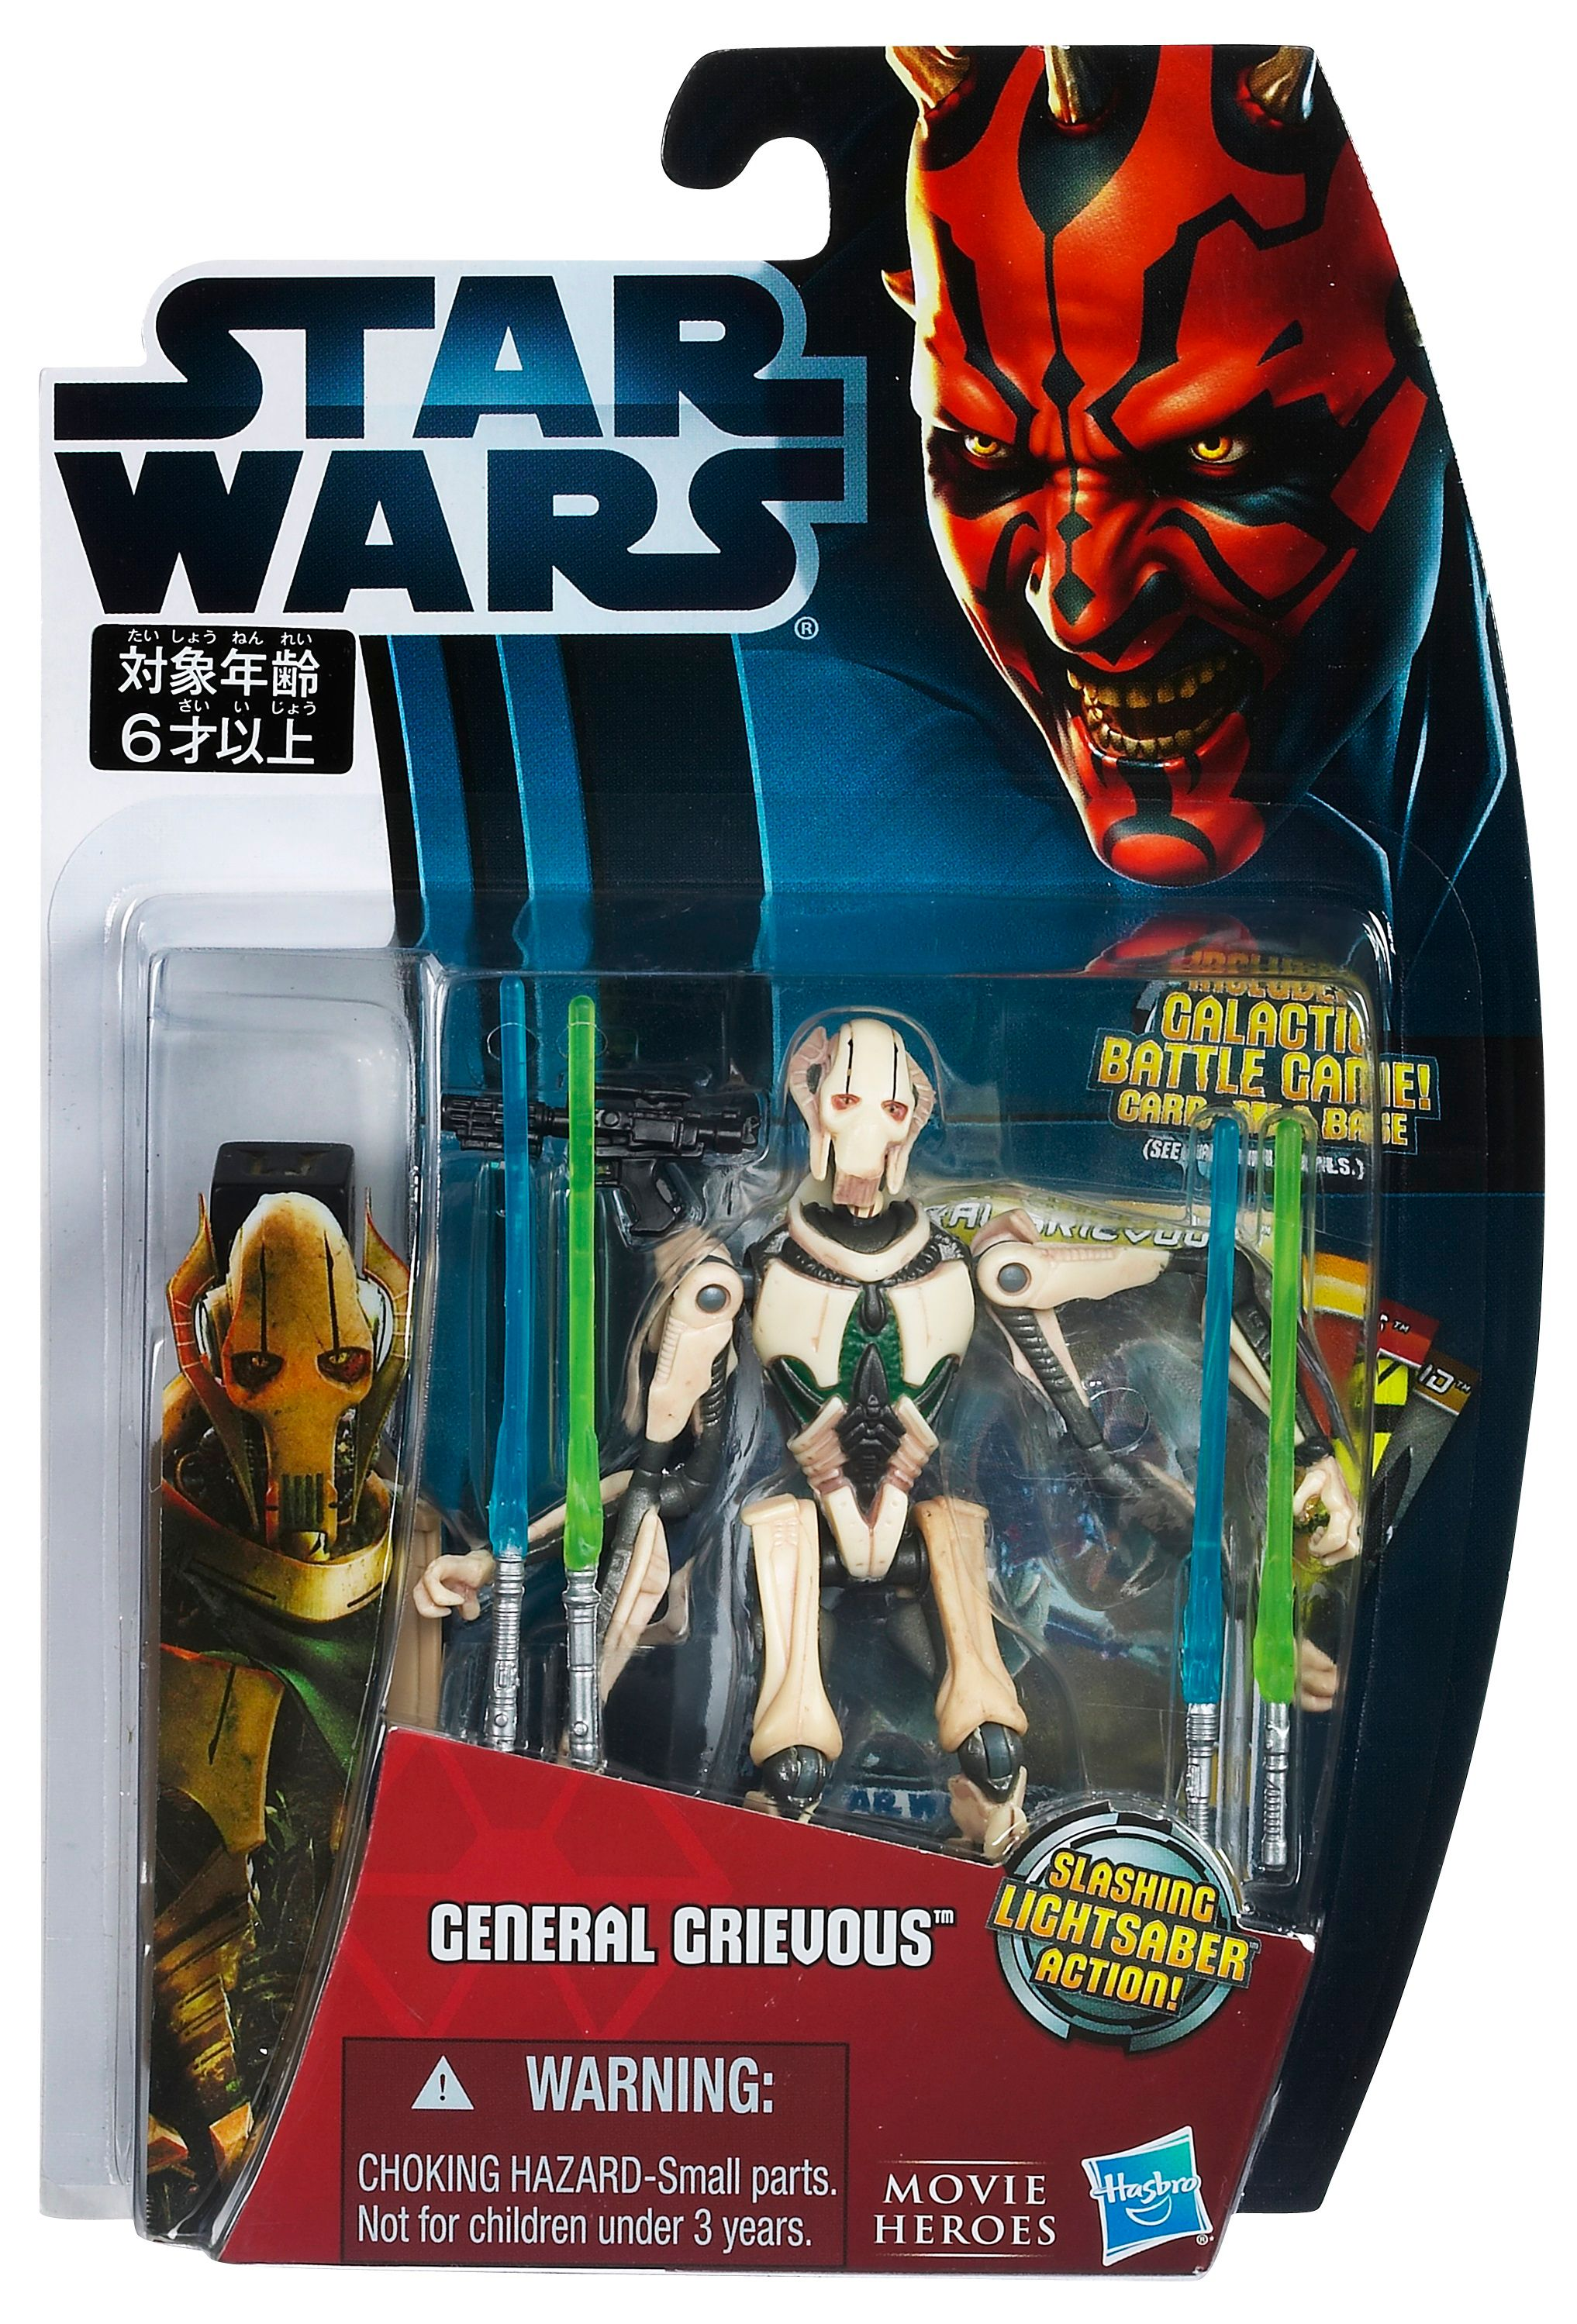 Star Wars General Grievous Movie Heroes Figure